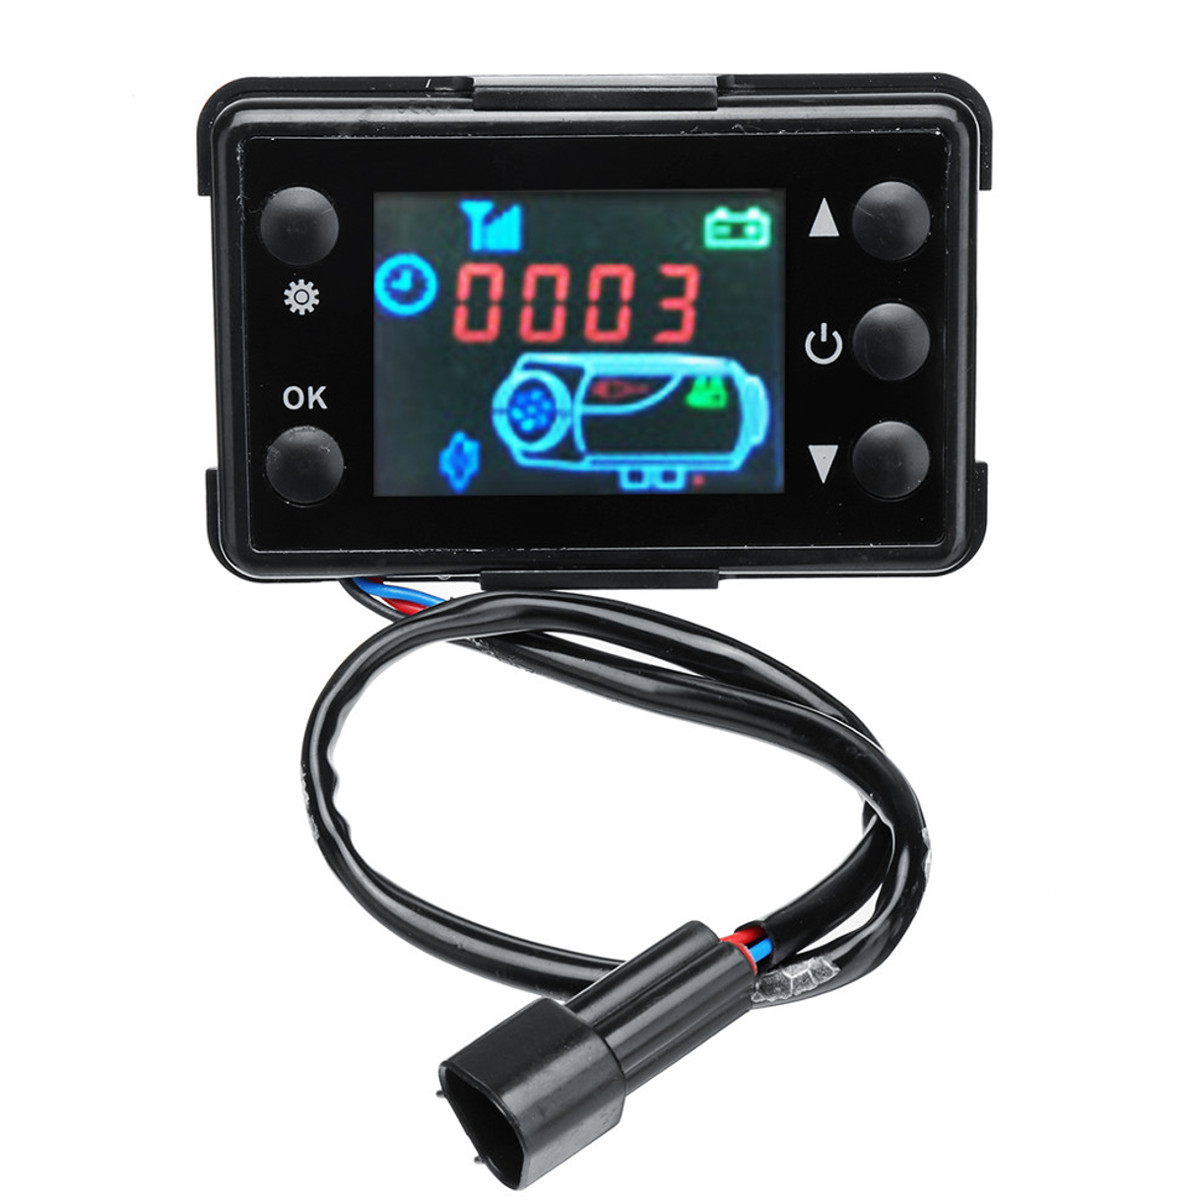 12v/24v 3/5kw Lcd Monitor Parking Heater Switch Car Heating Device Controller Universal For Car Track Air Heater Controllers Automobiles & Motorcycles